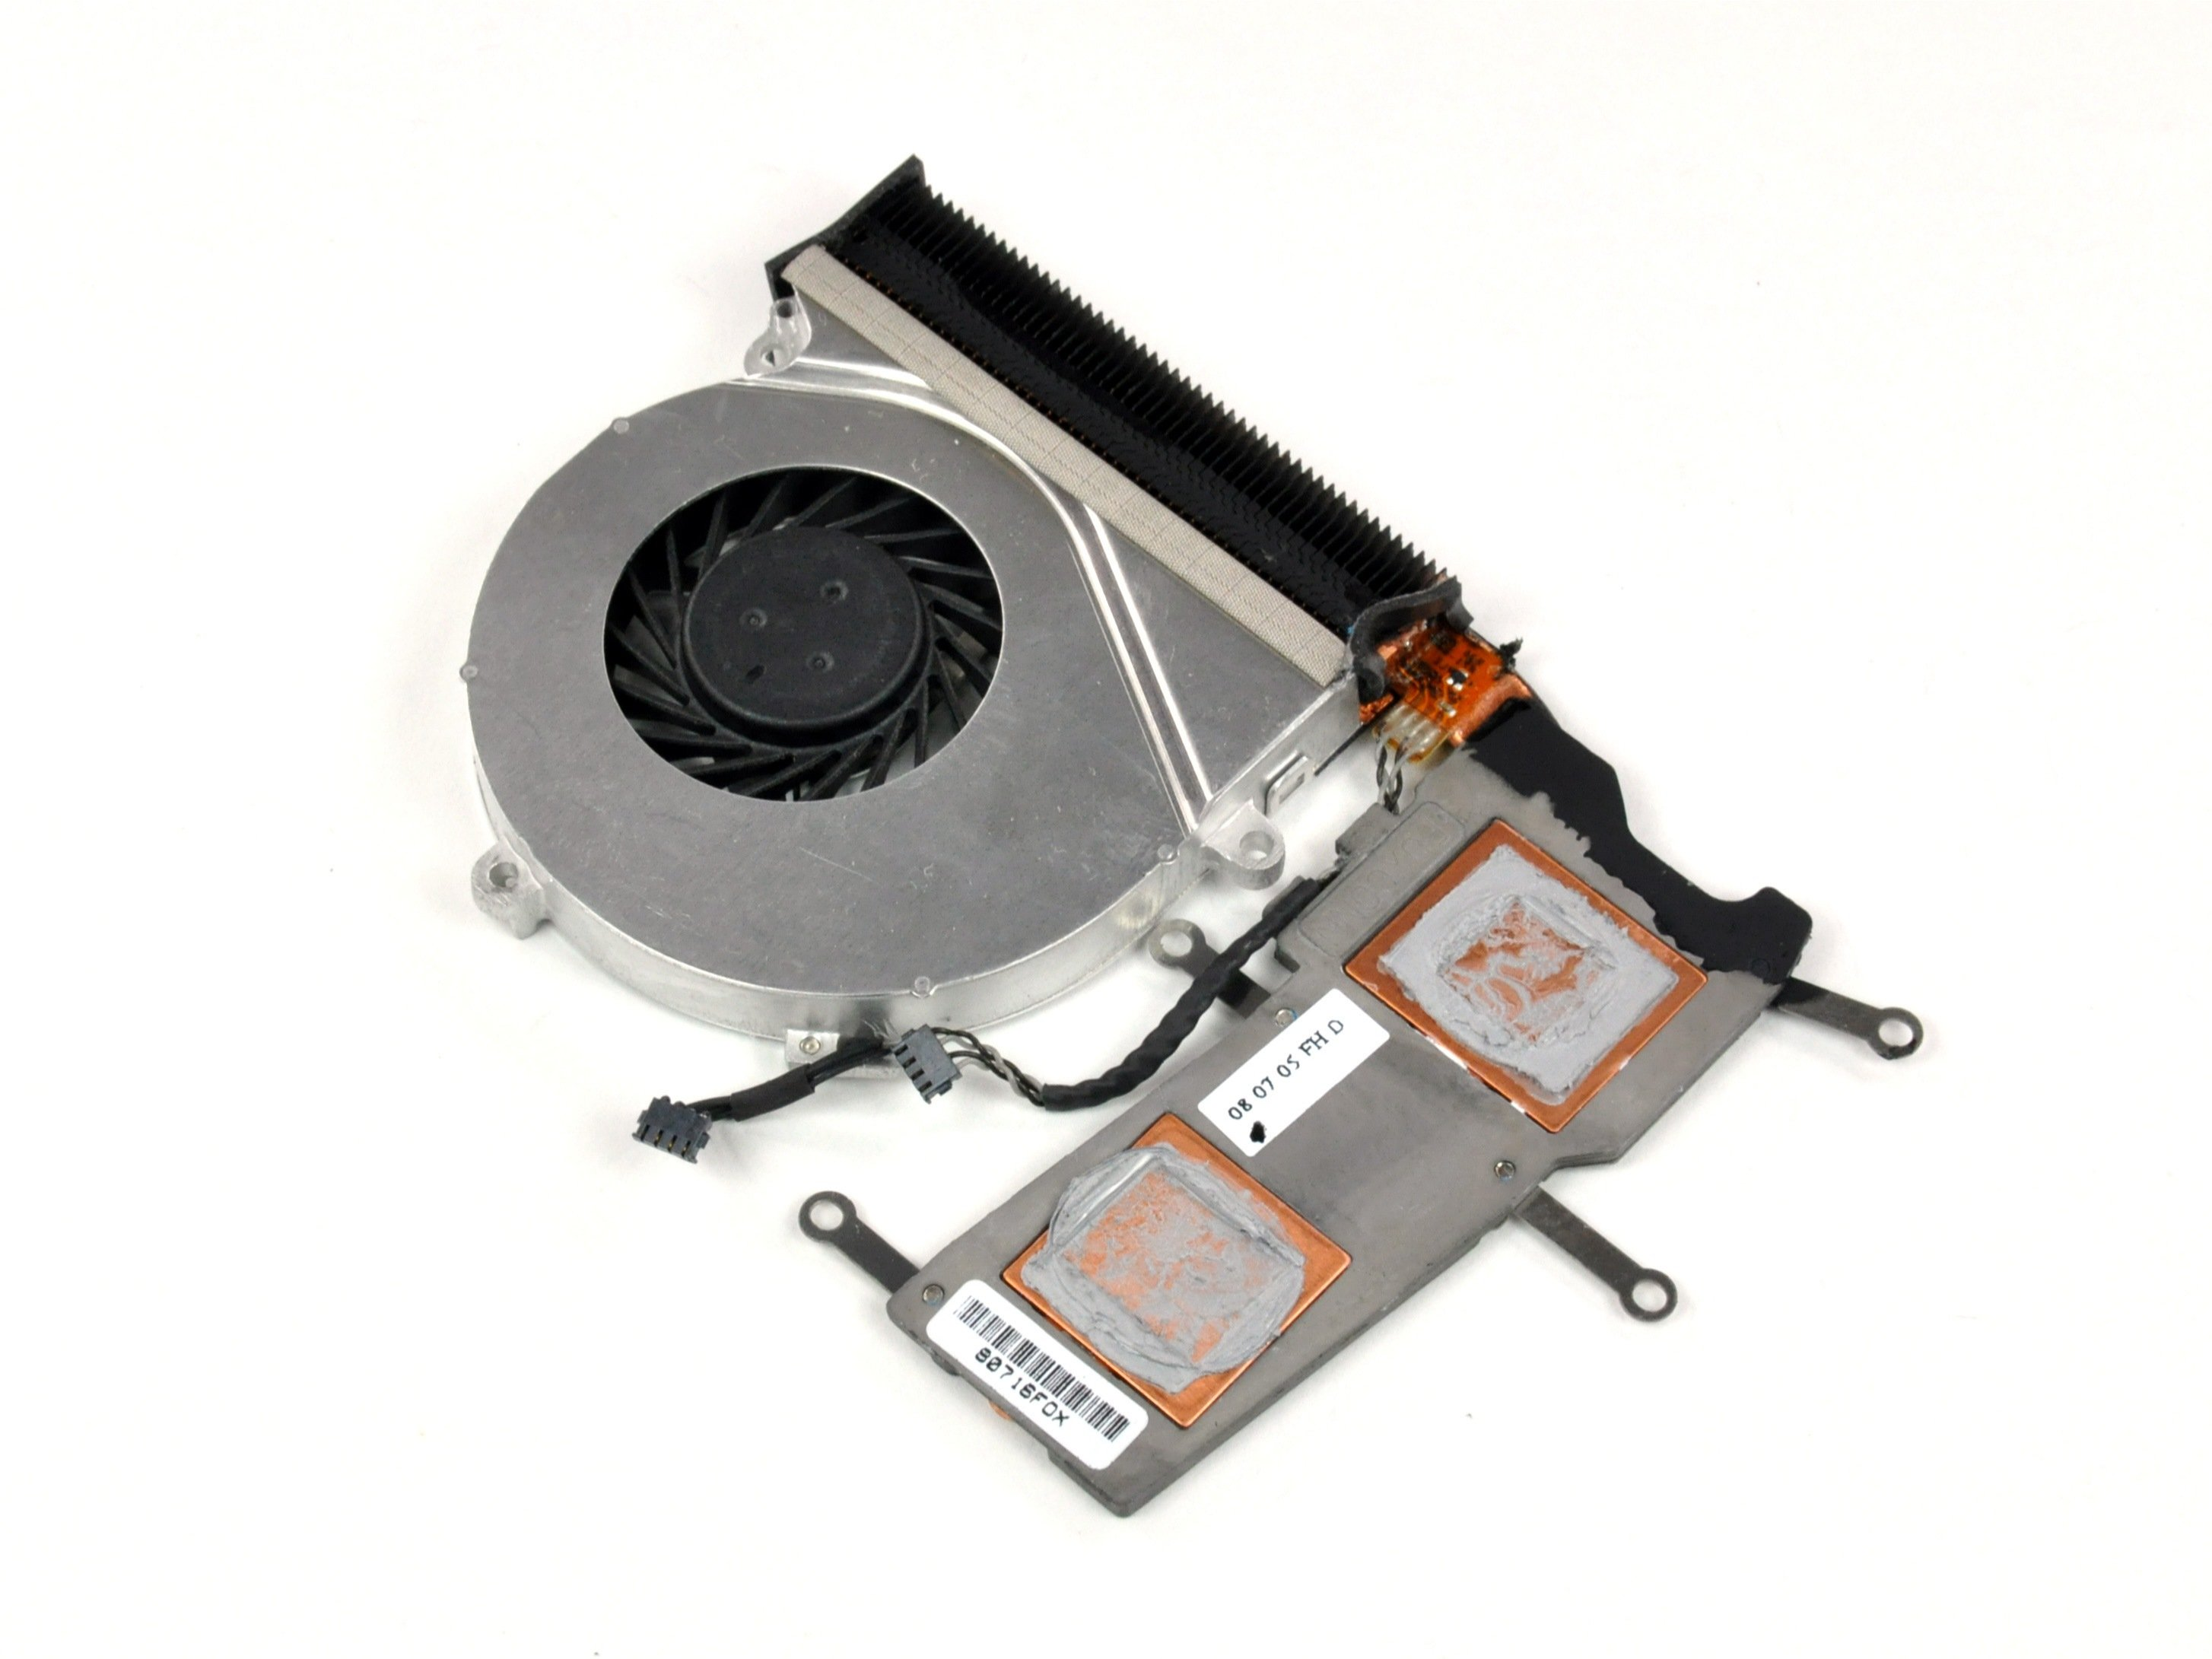 How to Apply Thermal Paste - iFixit Repair Guide